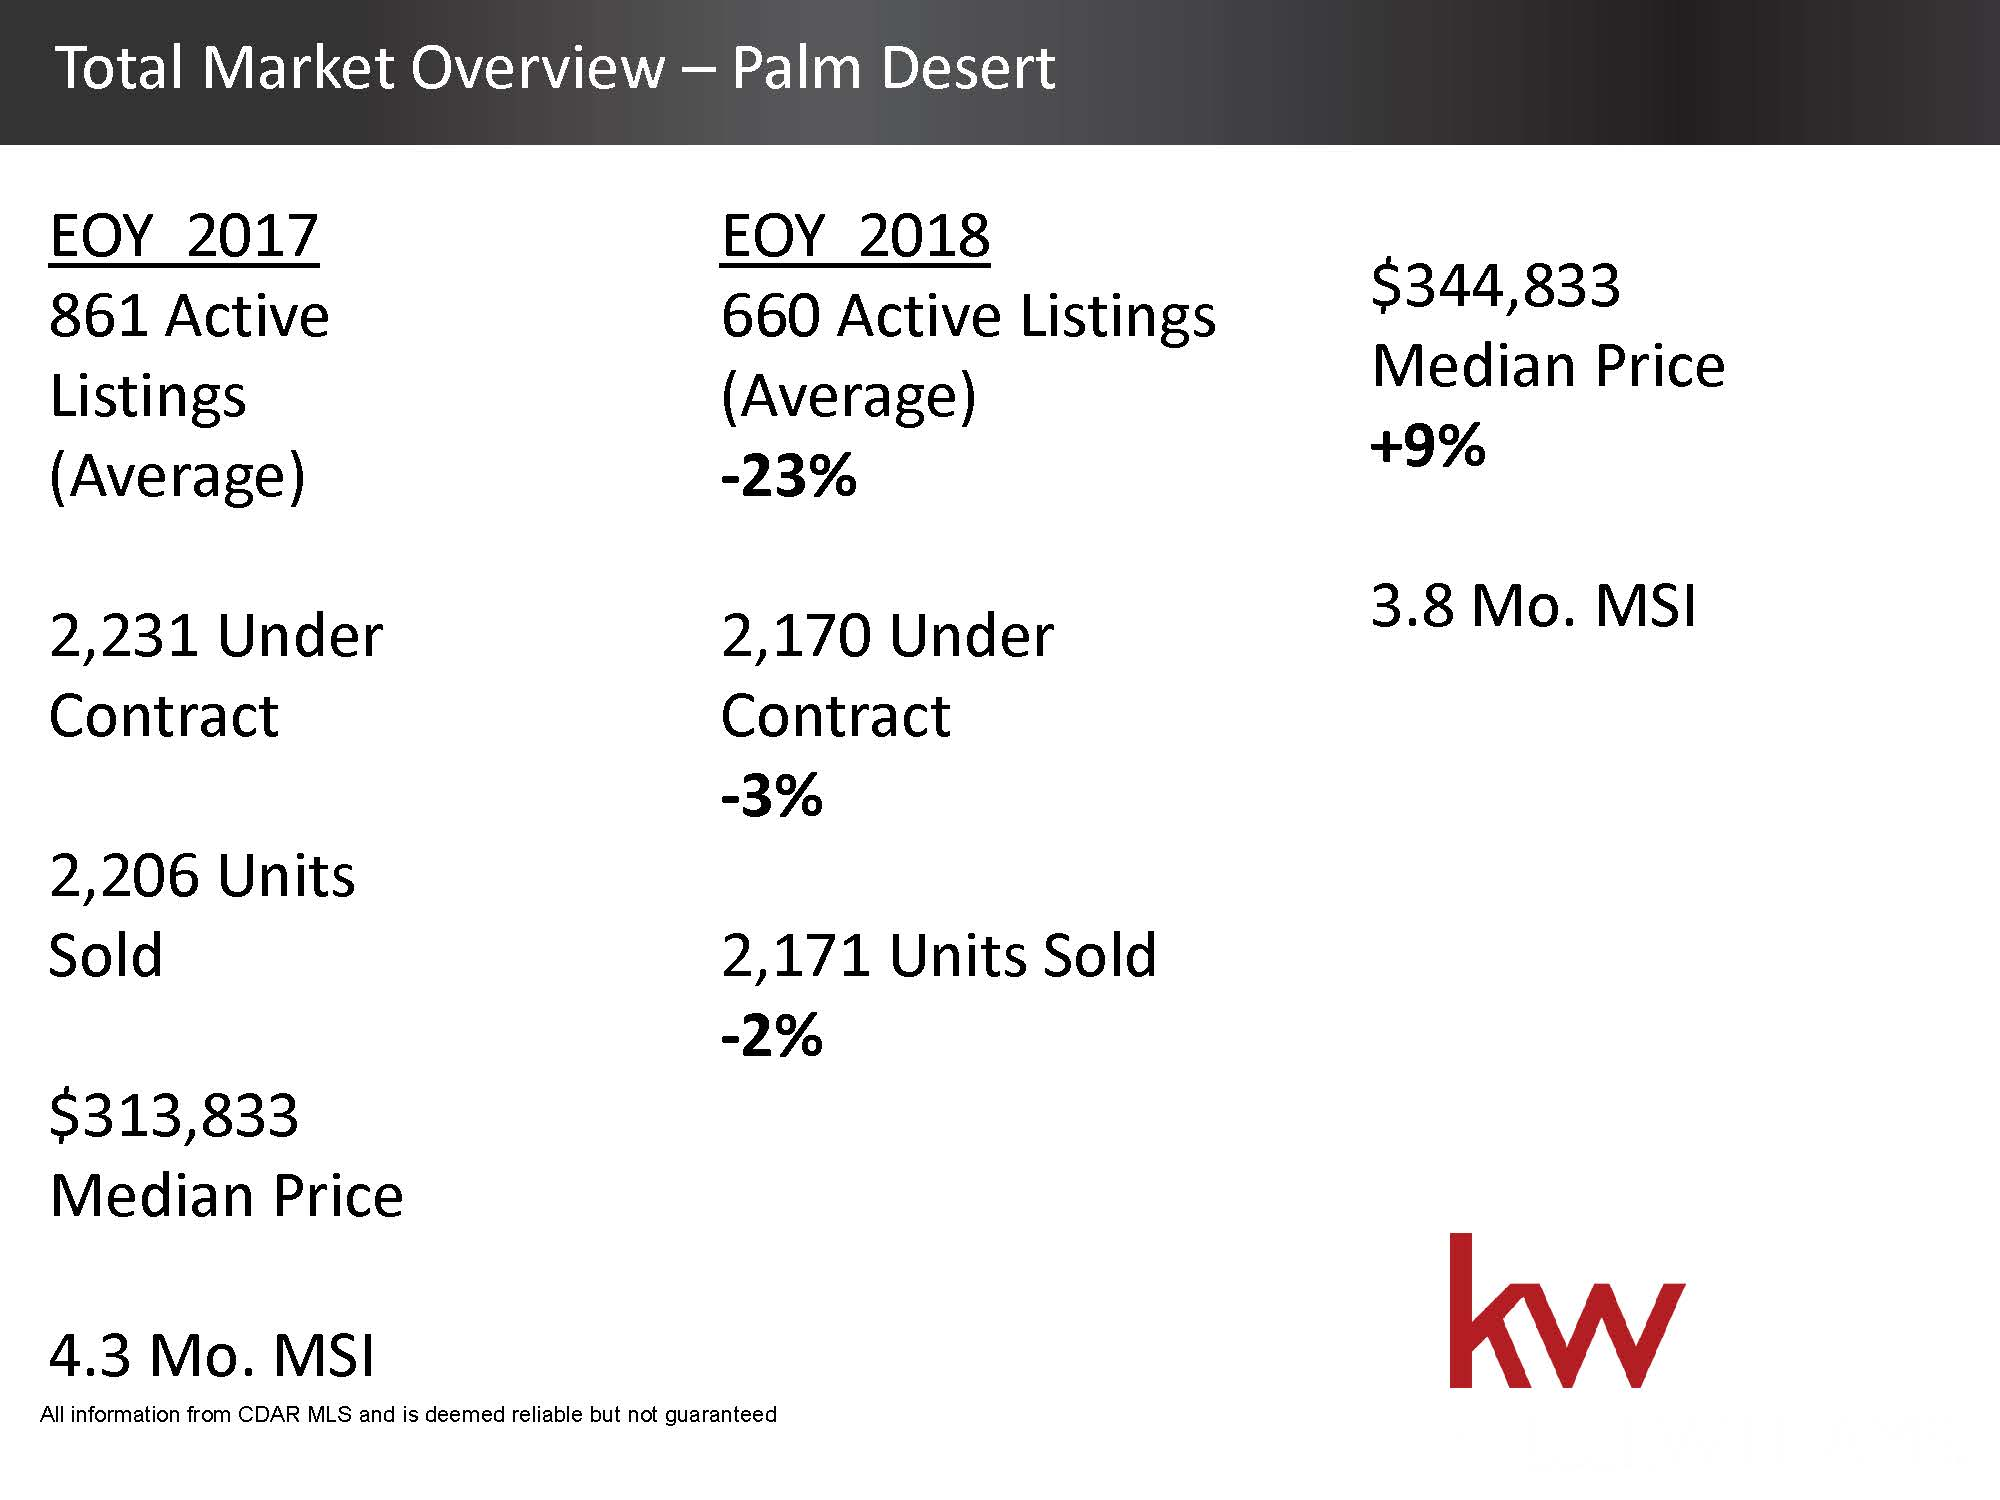 Total Housing Market 2018 Overview - Palm Desert